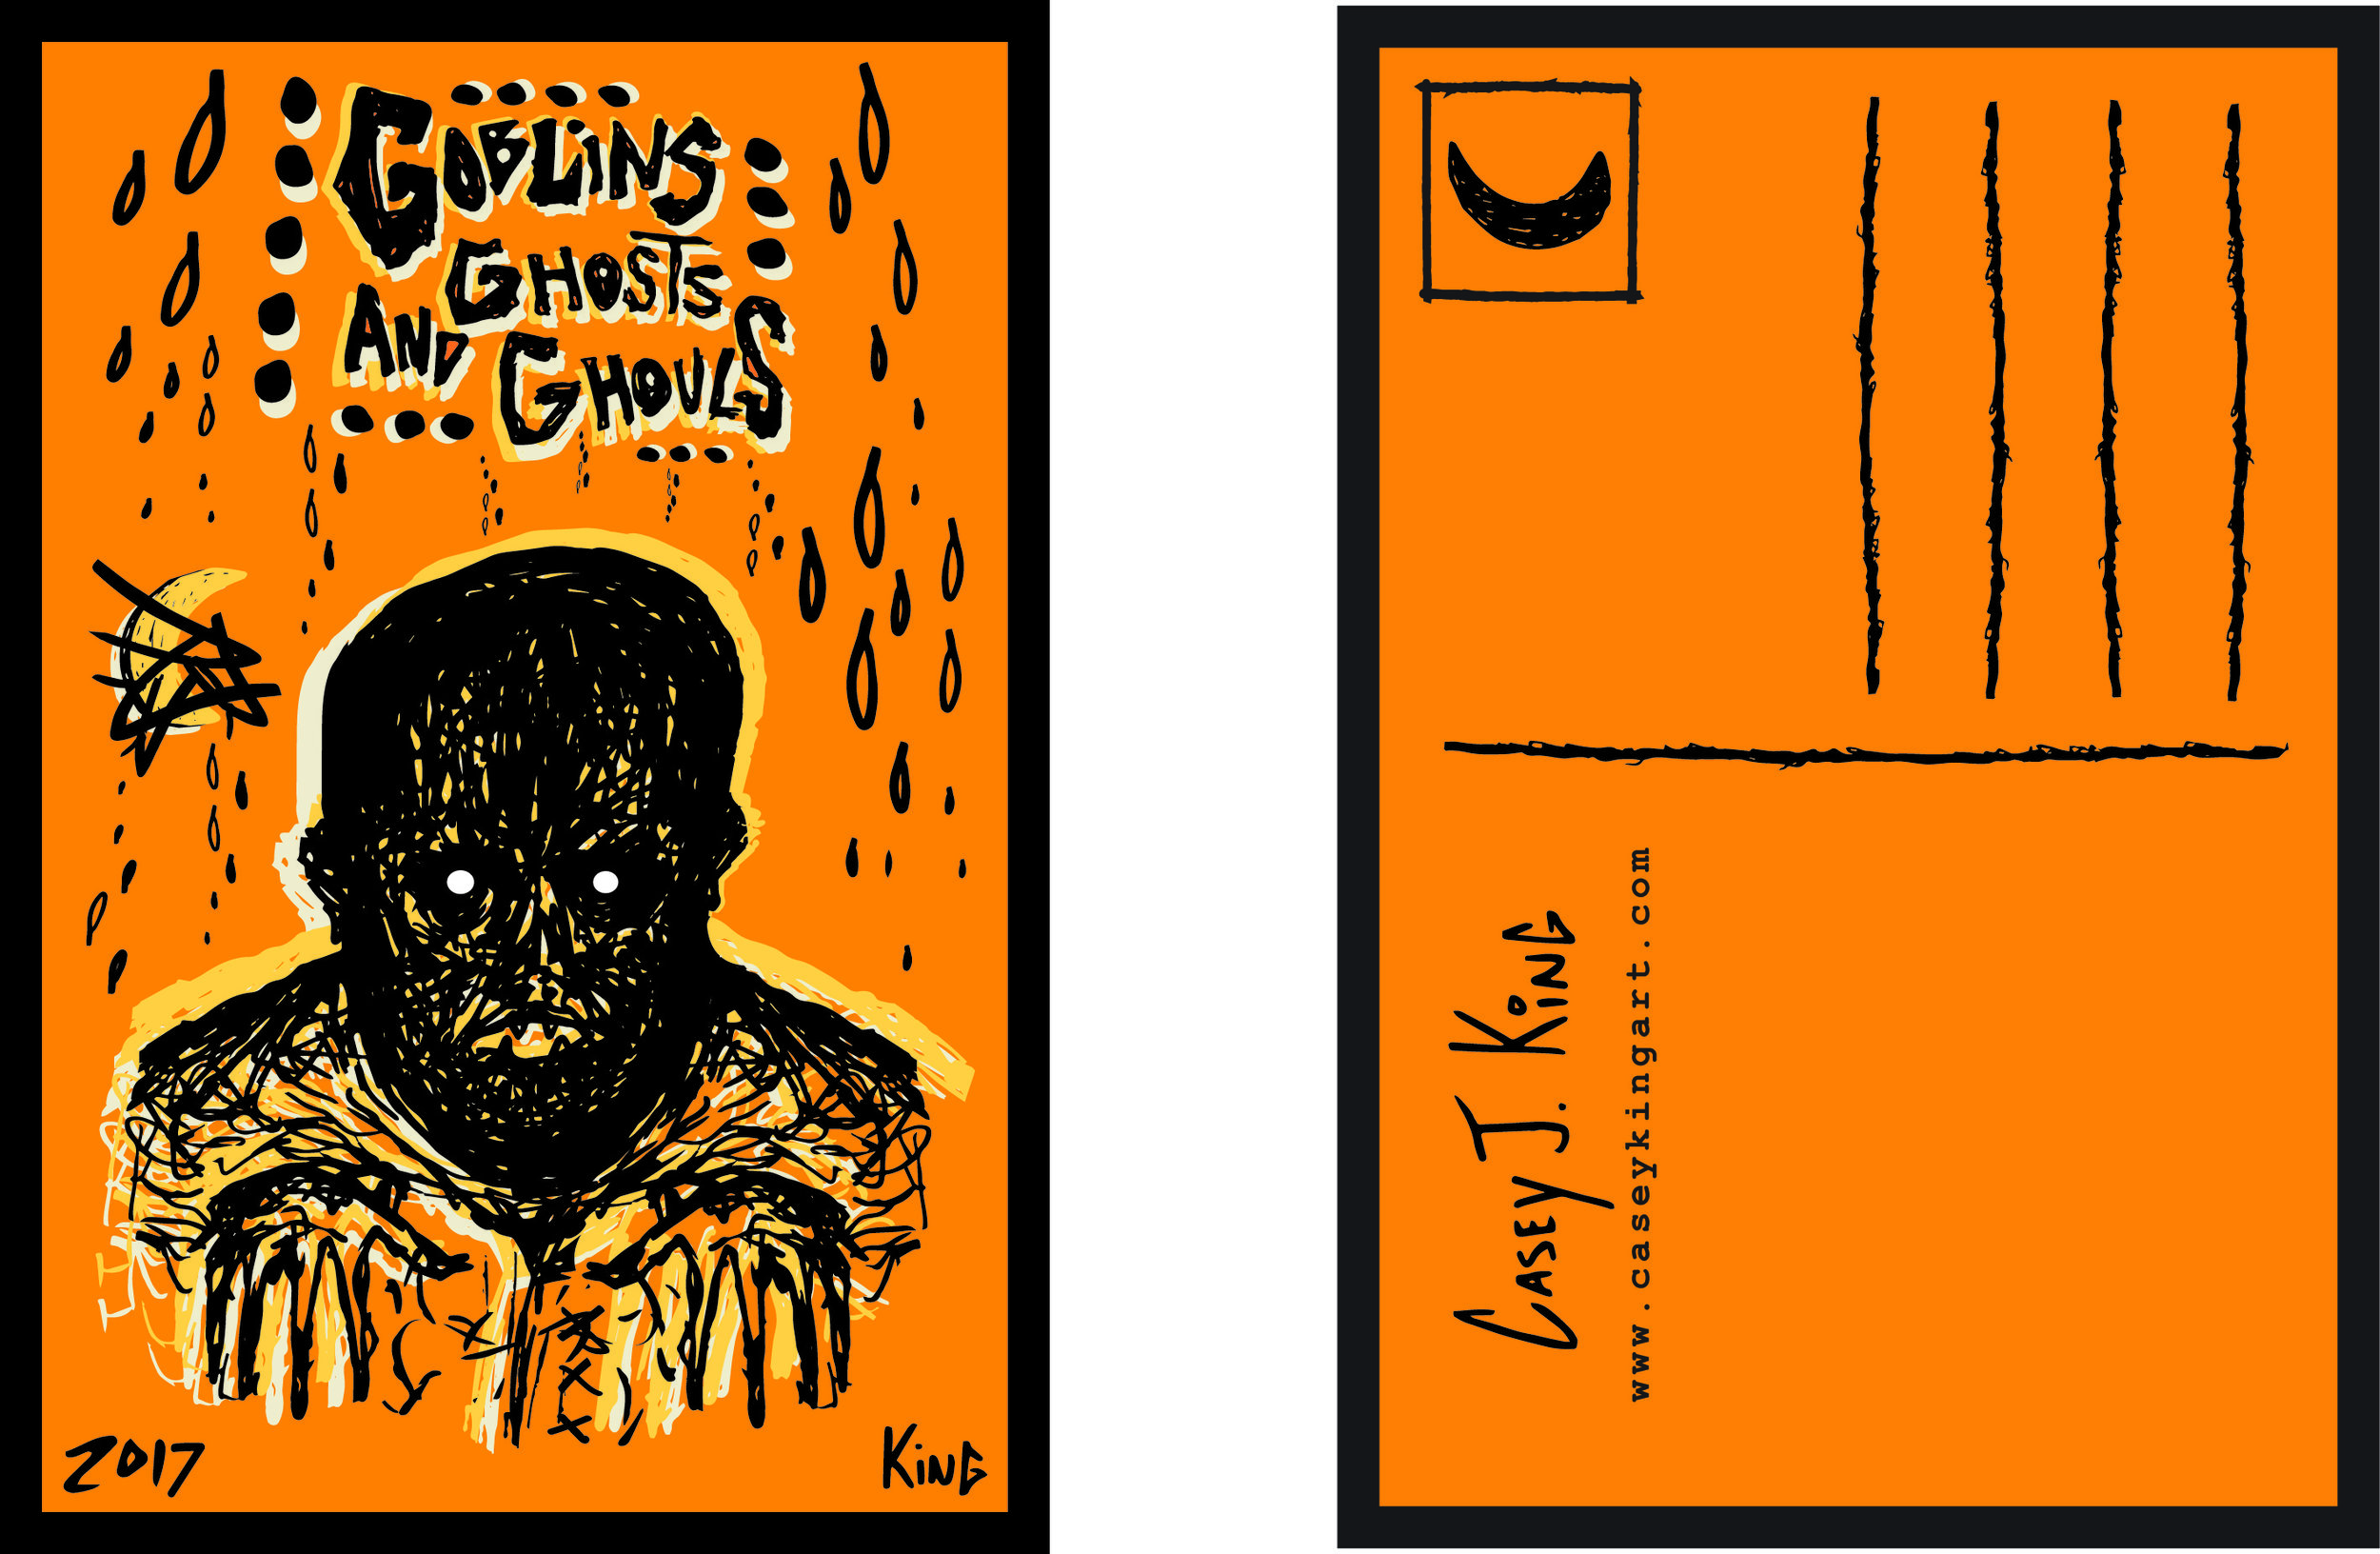 Goblins, Ghosts, and Ghouls